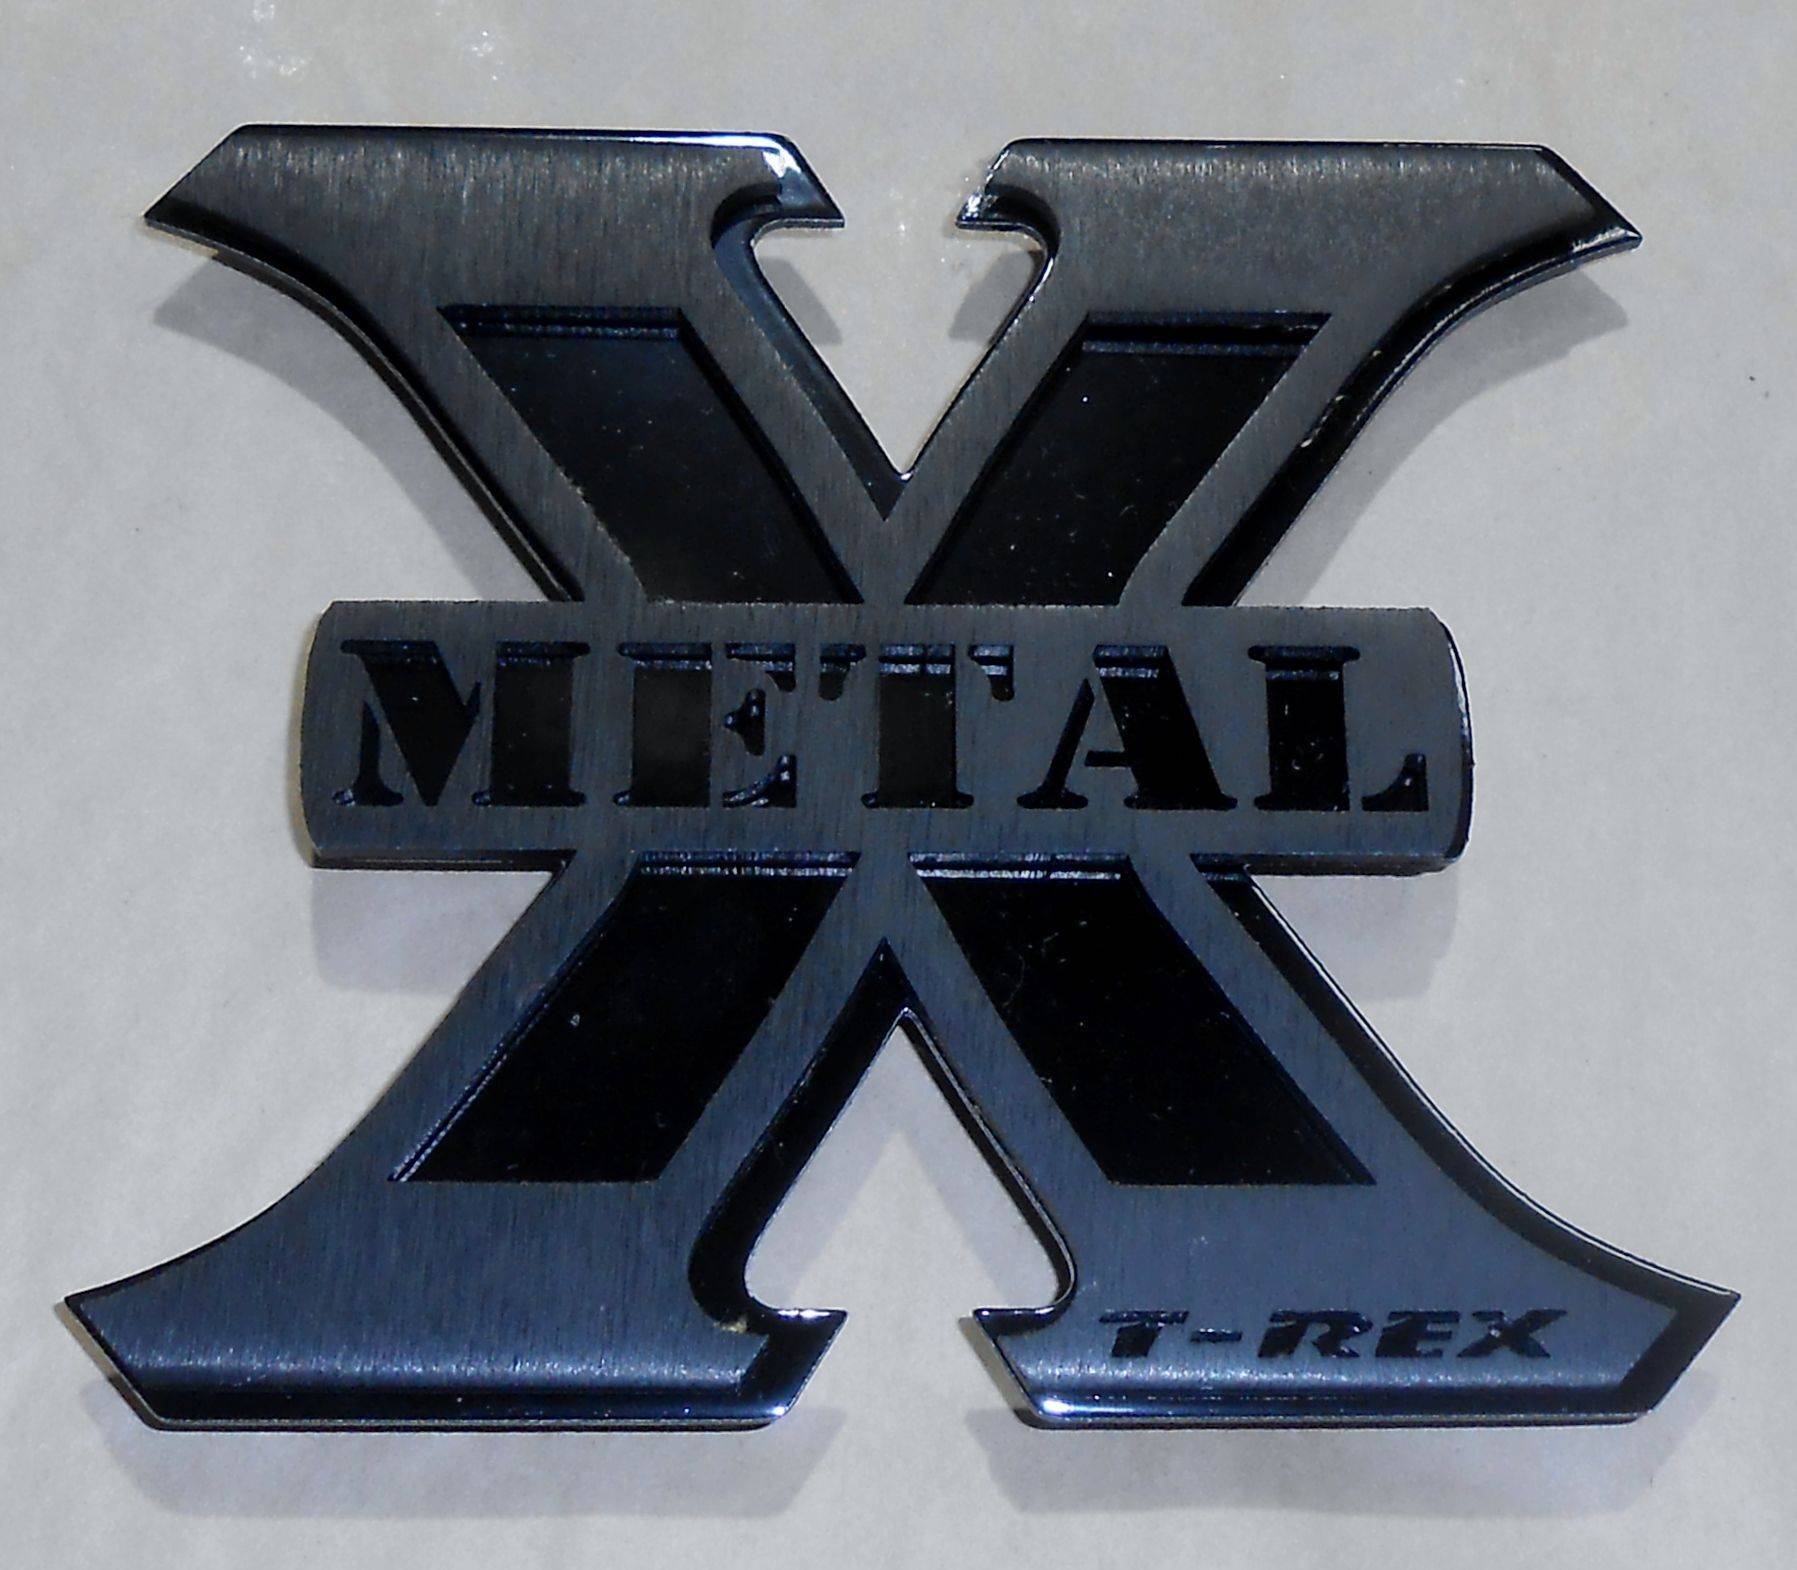 T-REX Grilles - Small X-Metal Logo, 2 1/4 Inch Height x 2 2/1 Inch Wide, Black Anodized Front Plate with Gloss Black Back Plate